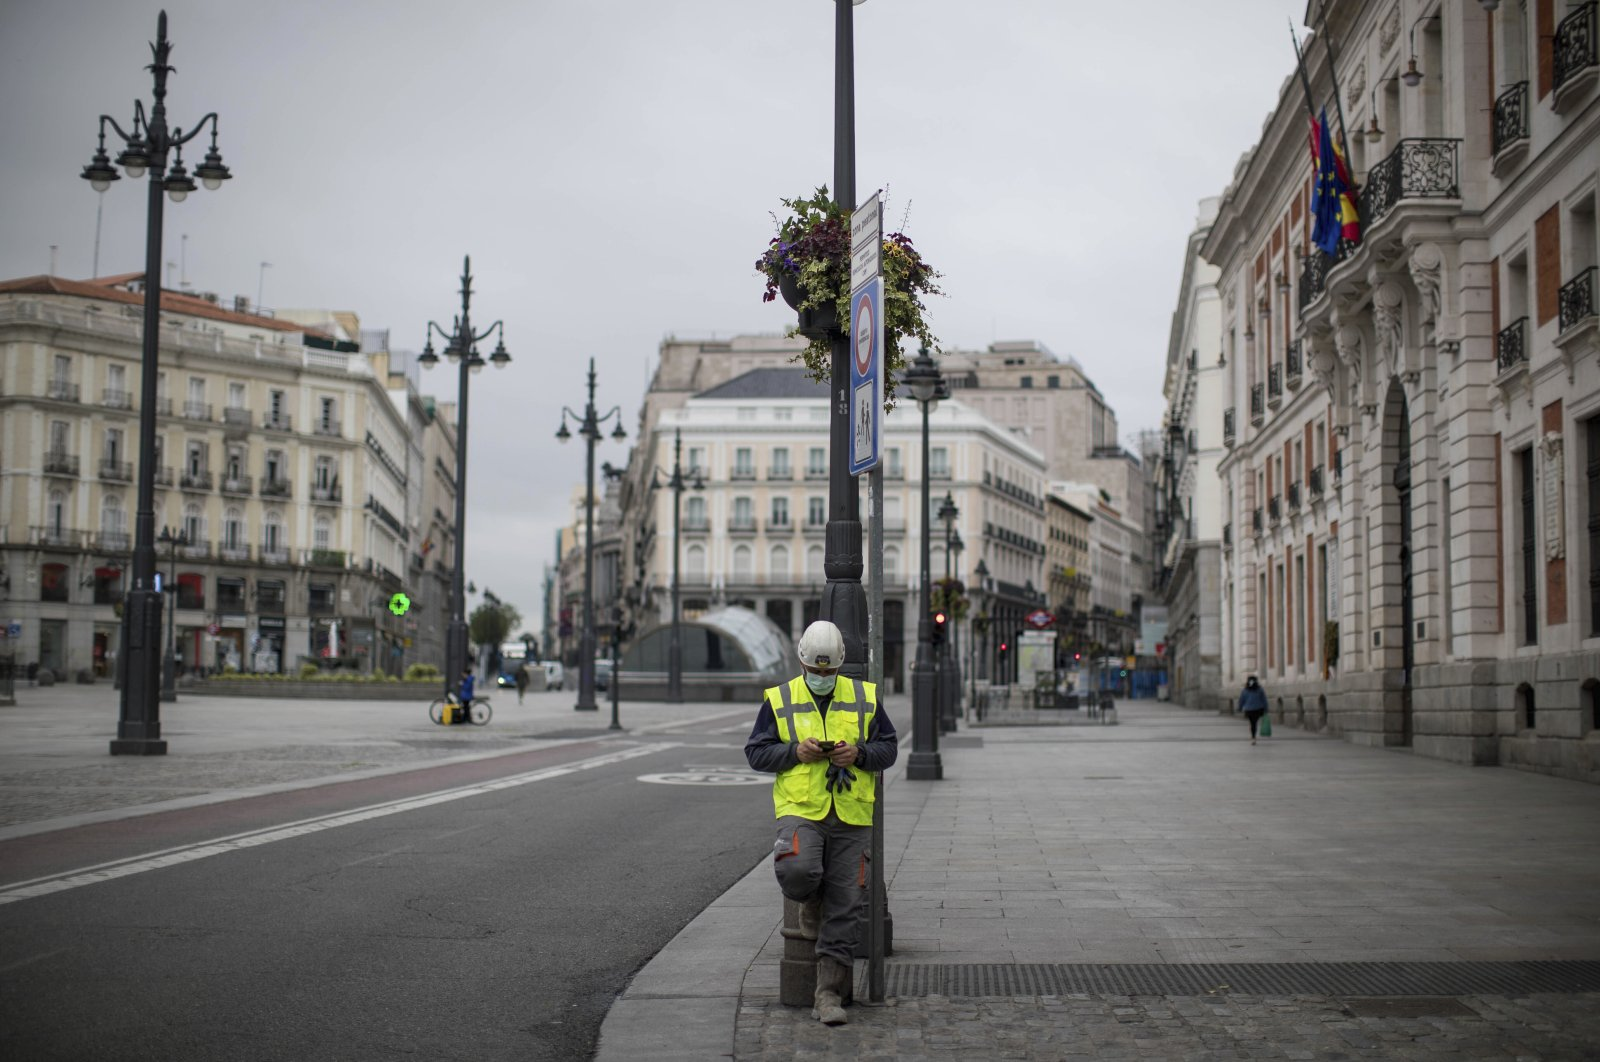 A worker checks his phone at the Sol square in Madrid, Spain, Tuesday, April 14, 2020.  (AP Photo)